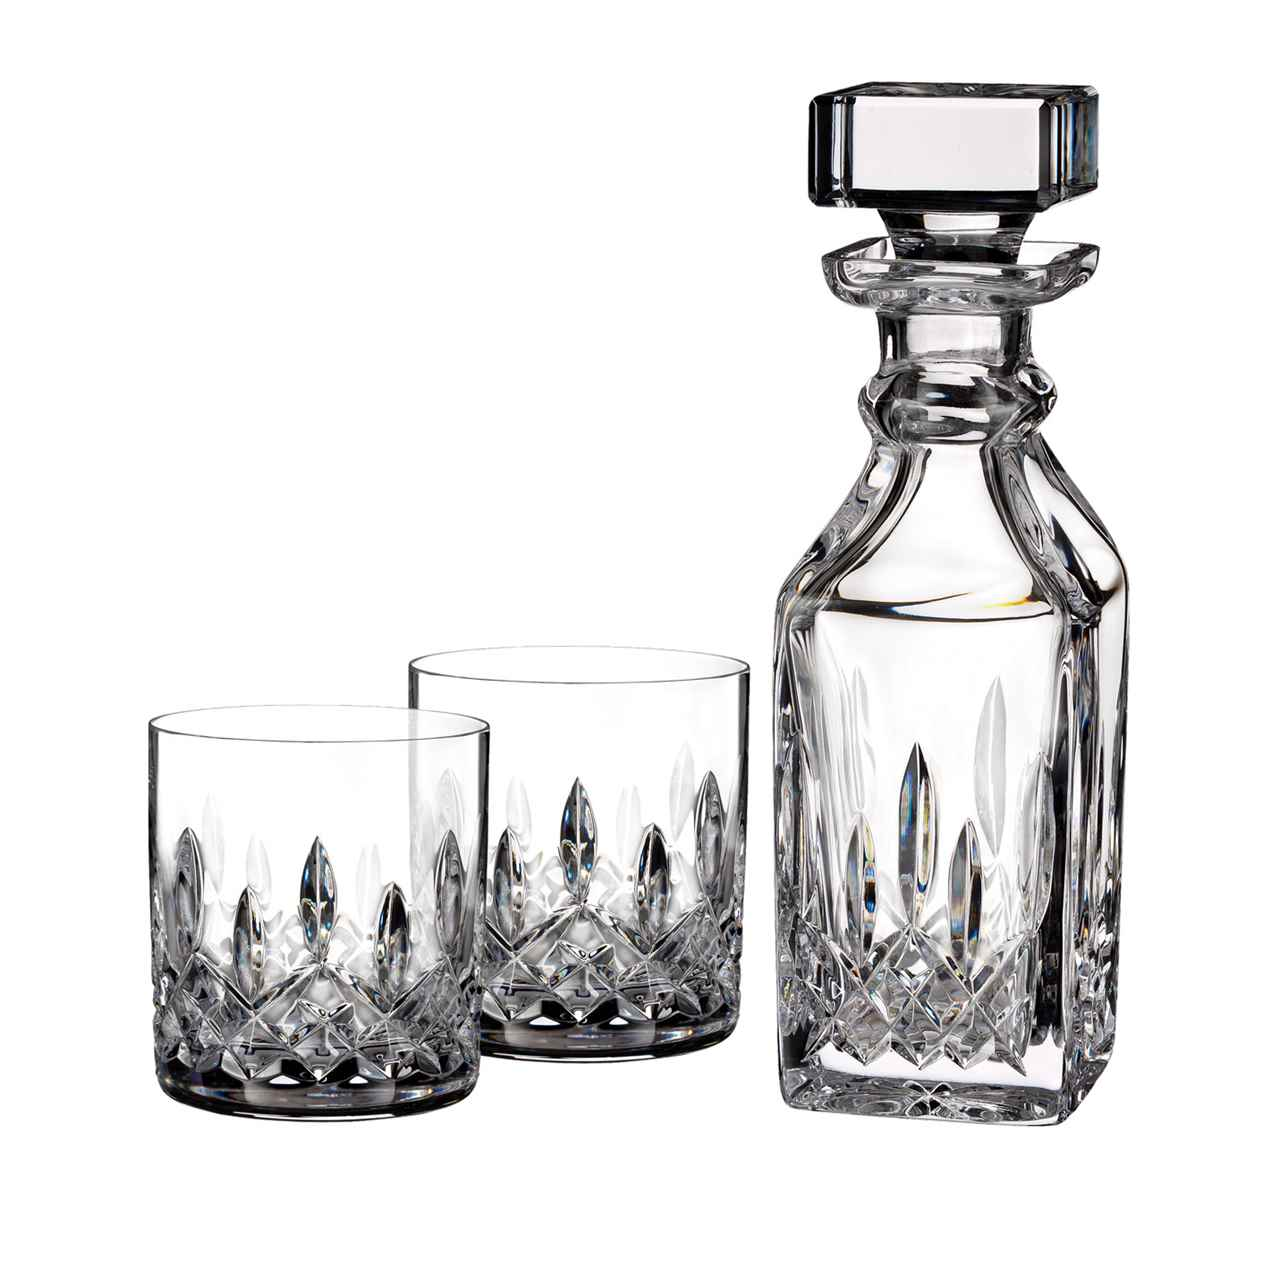 Lismore Connoisseur Square Decanter & Tumbler, Set of 2